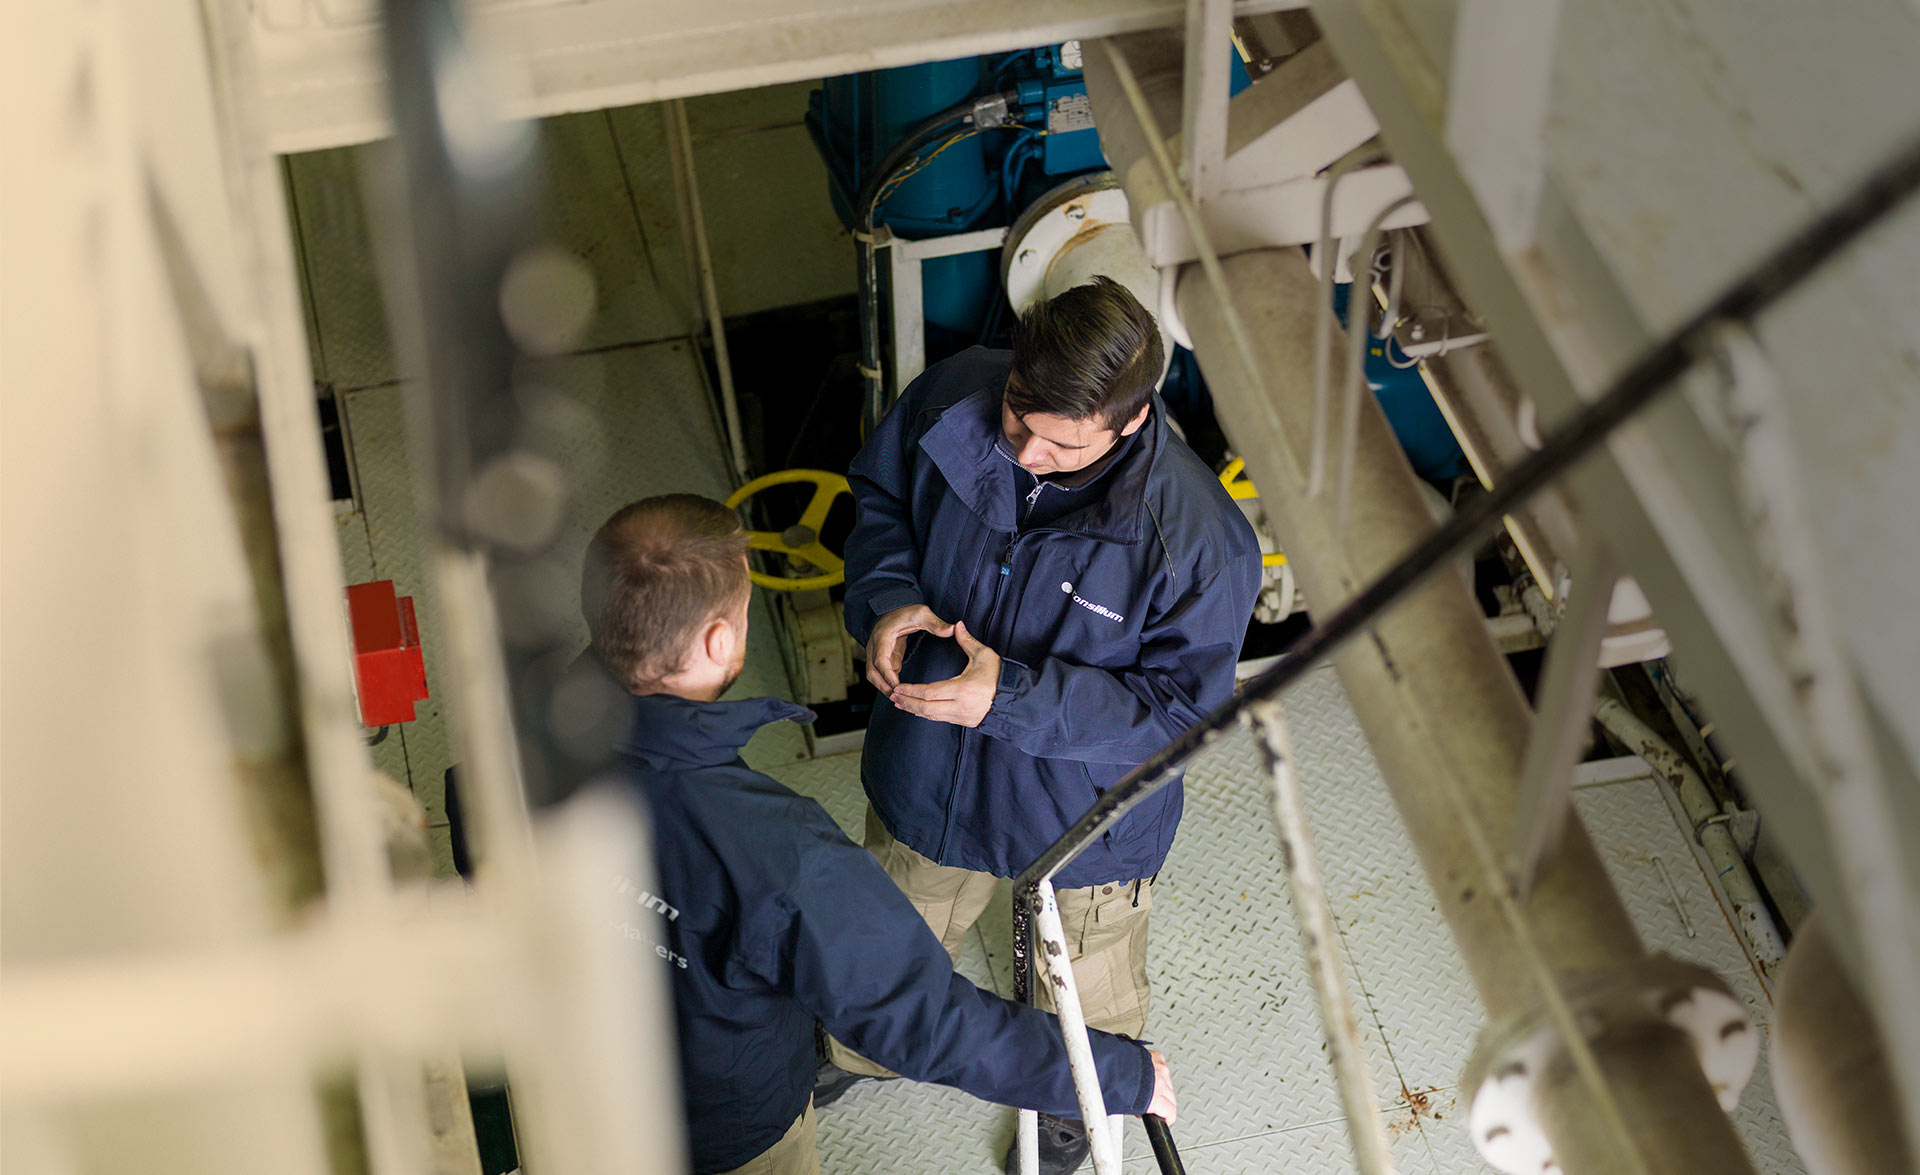 Two technicians at Consilium discussing the installation of a fire detector